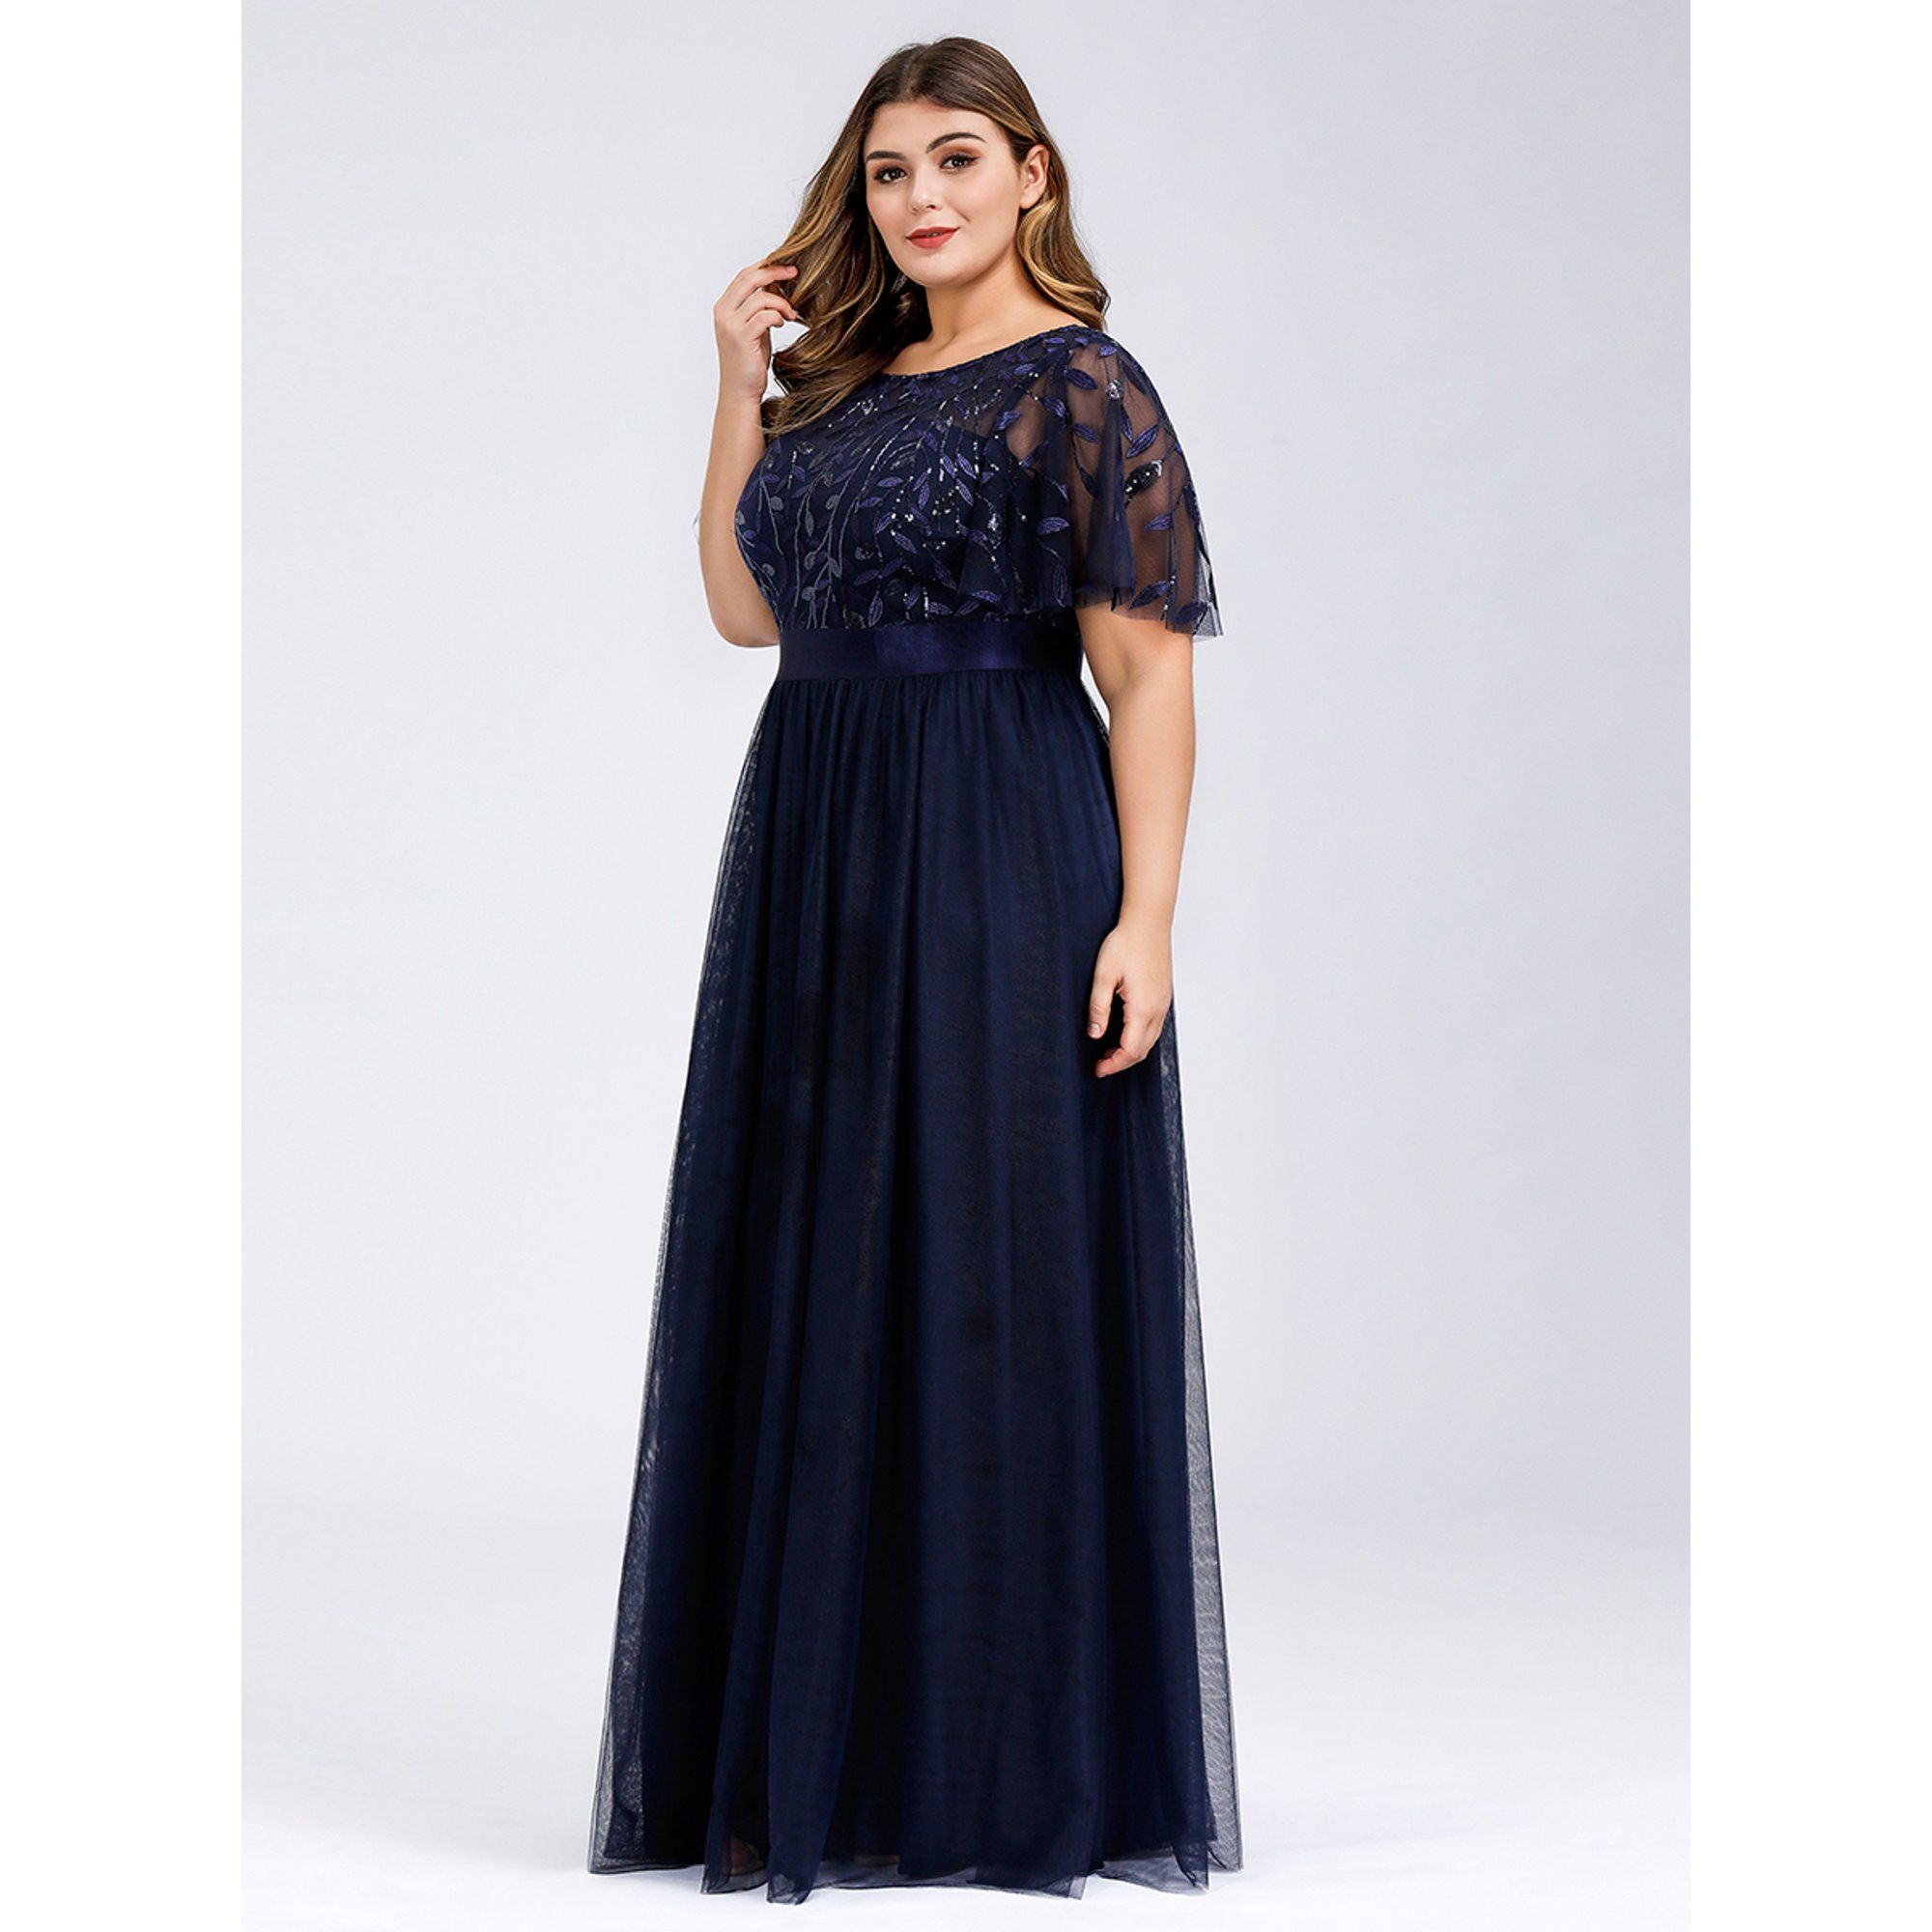 Ever Pretty Ever Pretty Womens Plus Size Wedding Gown Mother Of The Bride Dresses For Women 09042 Navy Blue Us24 Walmart Com Bridesmaid Dresses Plus Size Mother Of The Bride Dresses Beautiful [ 2000 x 2000 Pixel ]